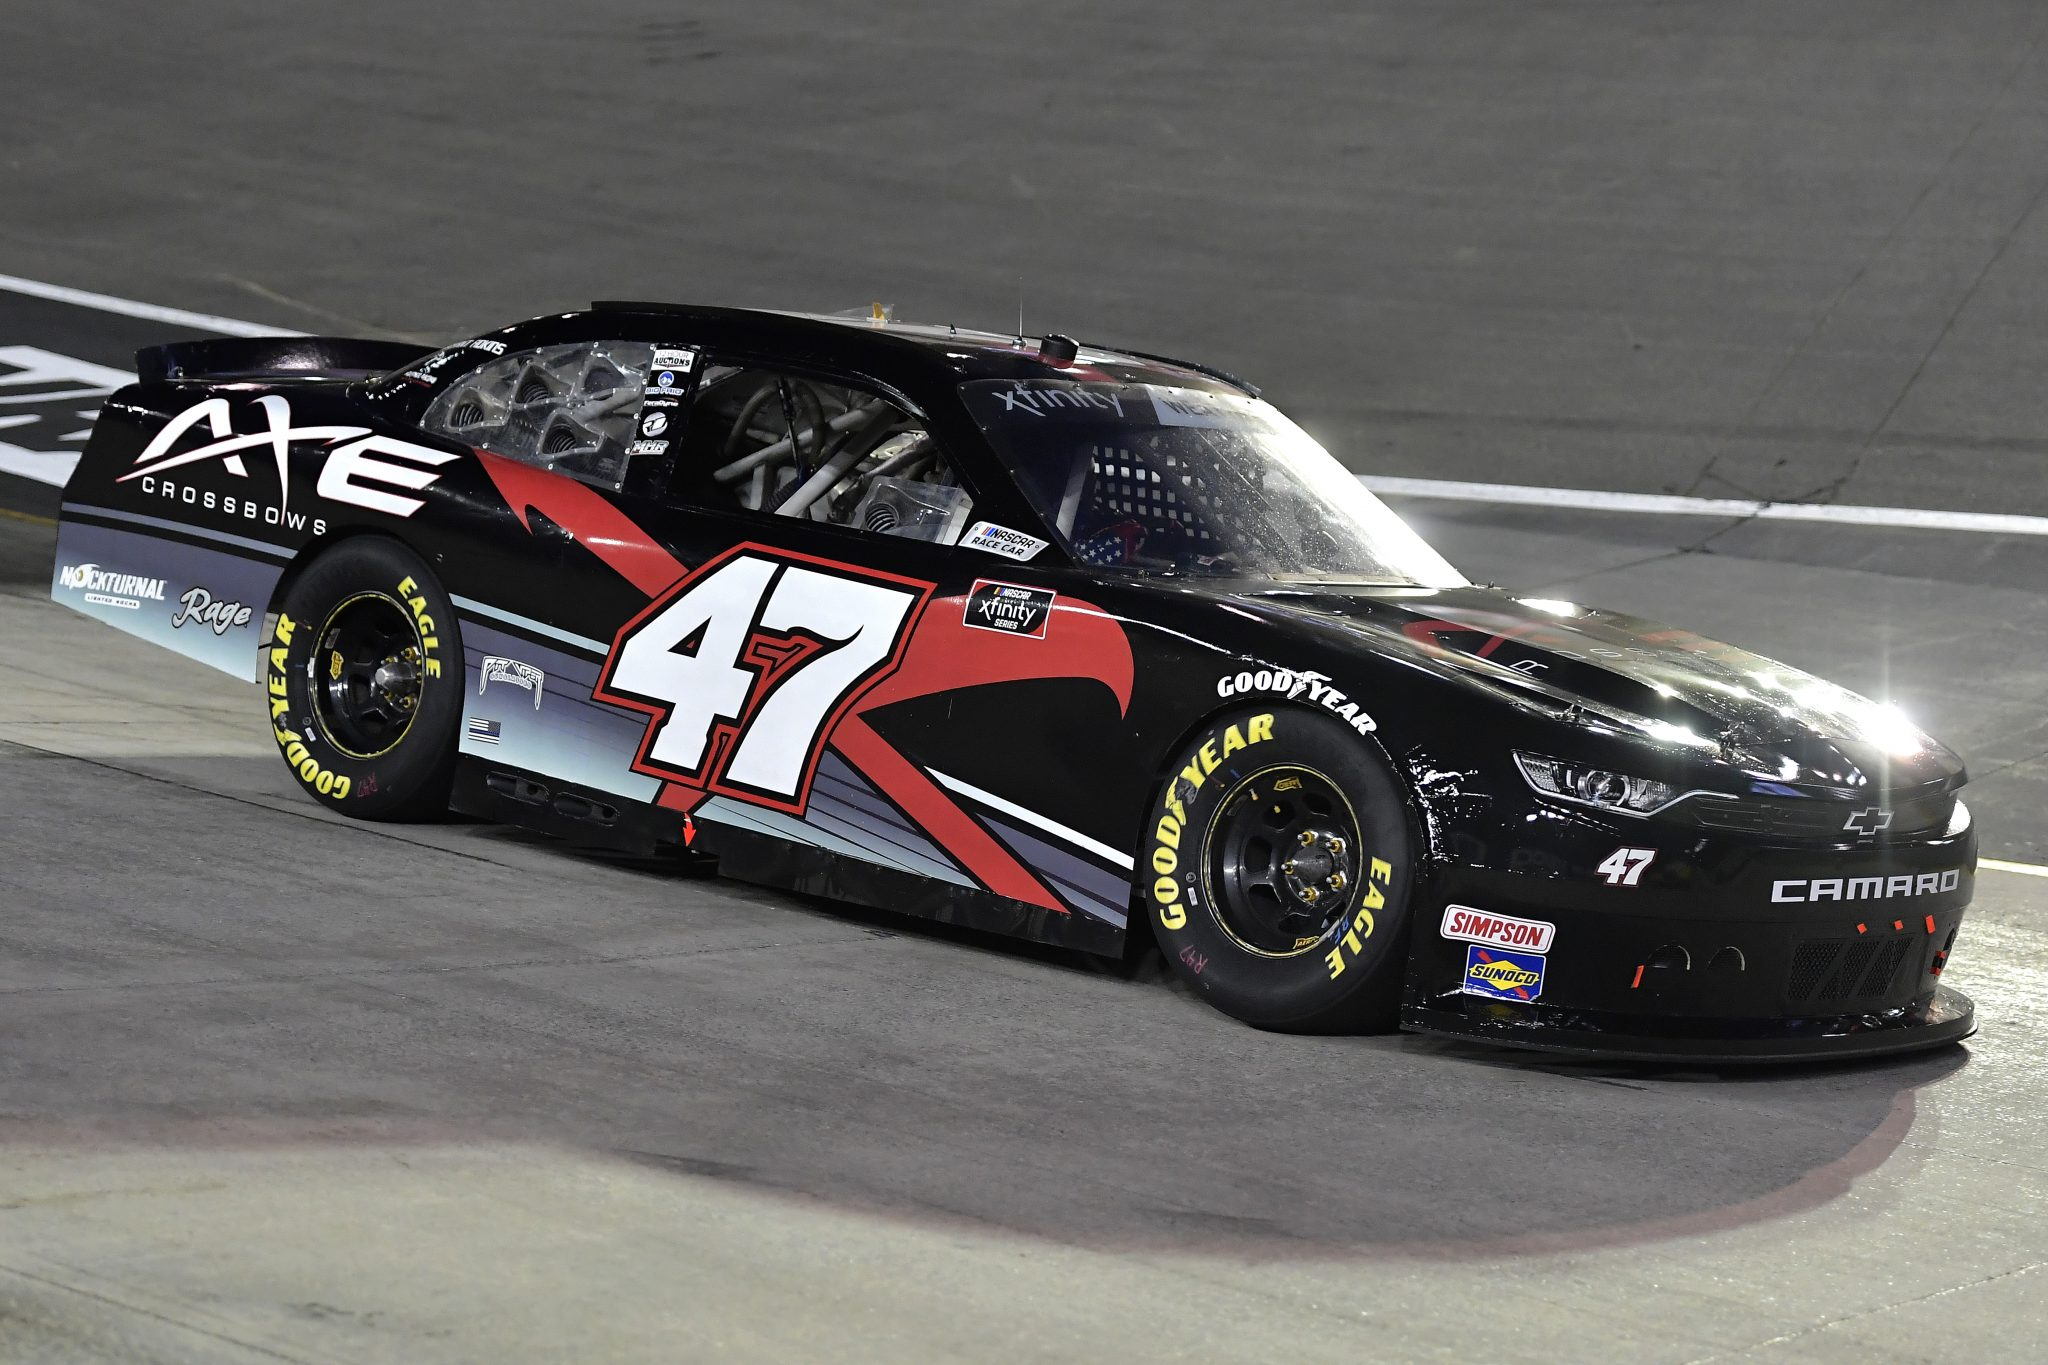 BRISTOL, TENNESSEE - SEPTEMBER 17: Kyle Weatherman, driver of the #47 Axe Crossbows Chevrolet, drives during the NASCAR Xfinity Series Food City 300 at Bristol Motor Speedway on September 17, 2021 in Bristol, Tennessee. (Photo by Logan Riely/Getty Images) | Getty Images